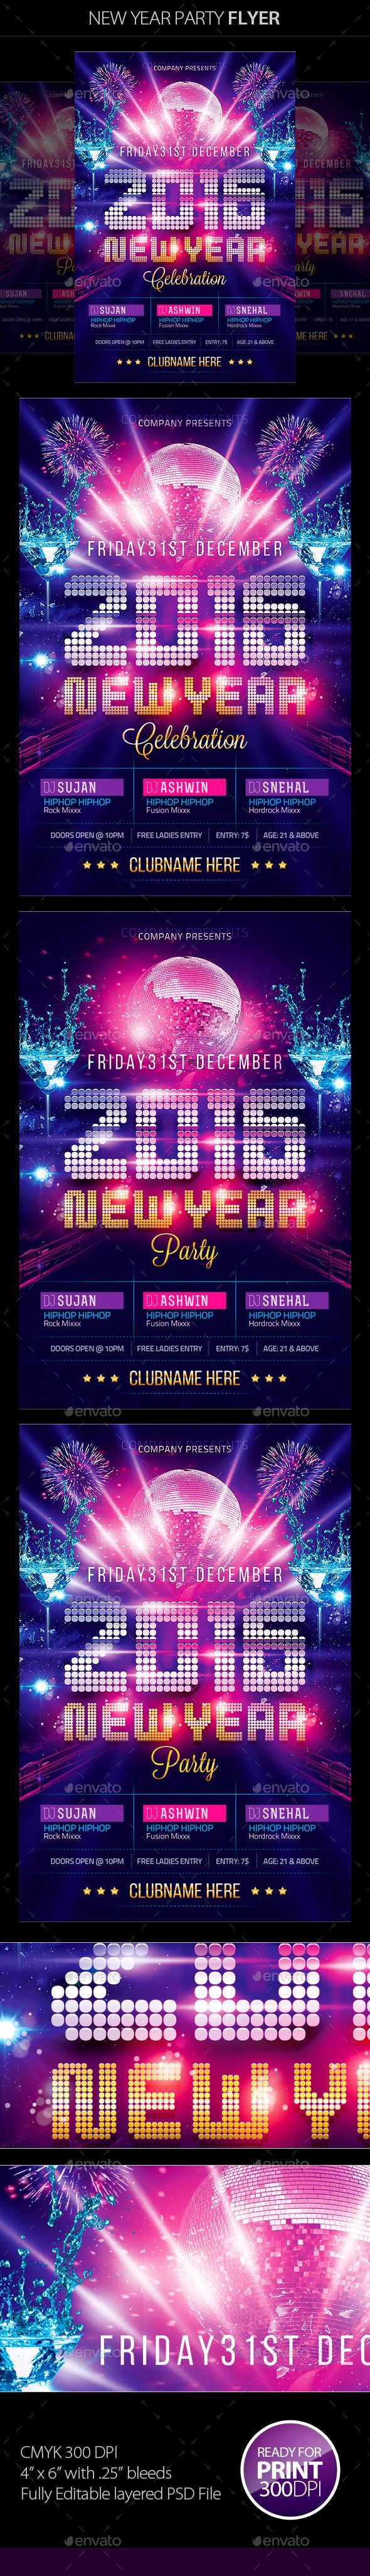 New Year Party Flyer Template PSD #design #nye Download: http://graphicriver.net/item/new-year-party-flyer/9522866?ref=ksioks